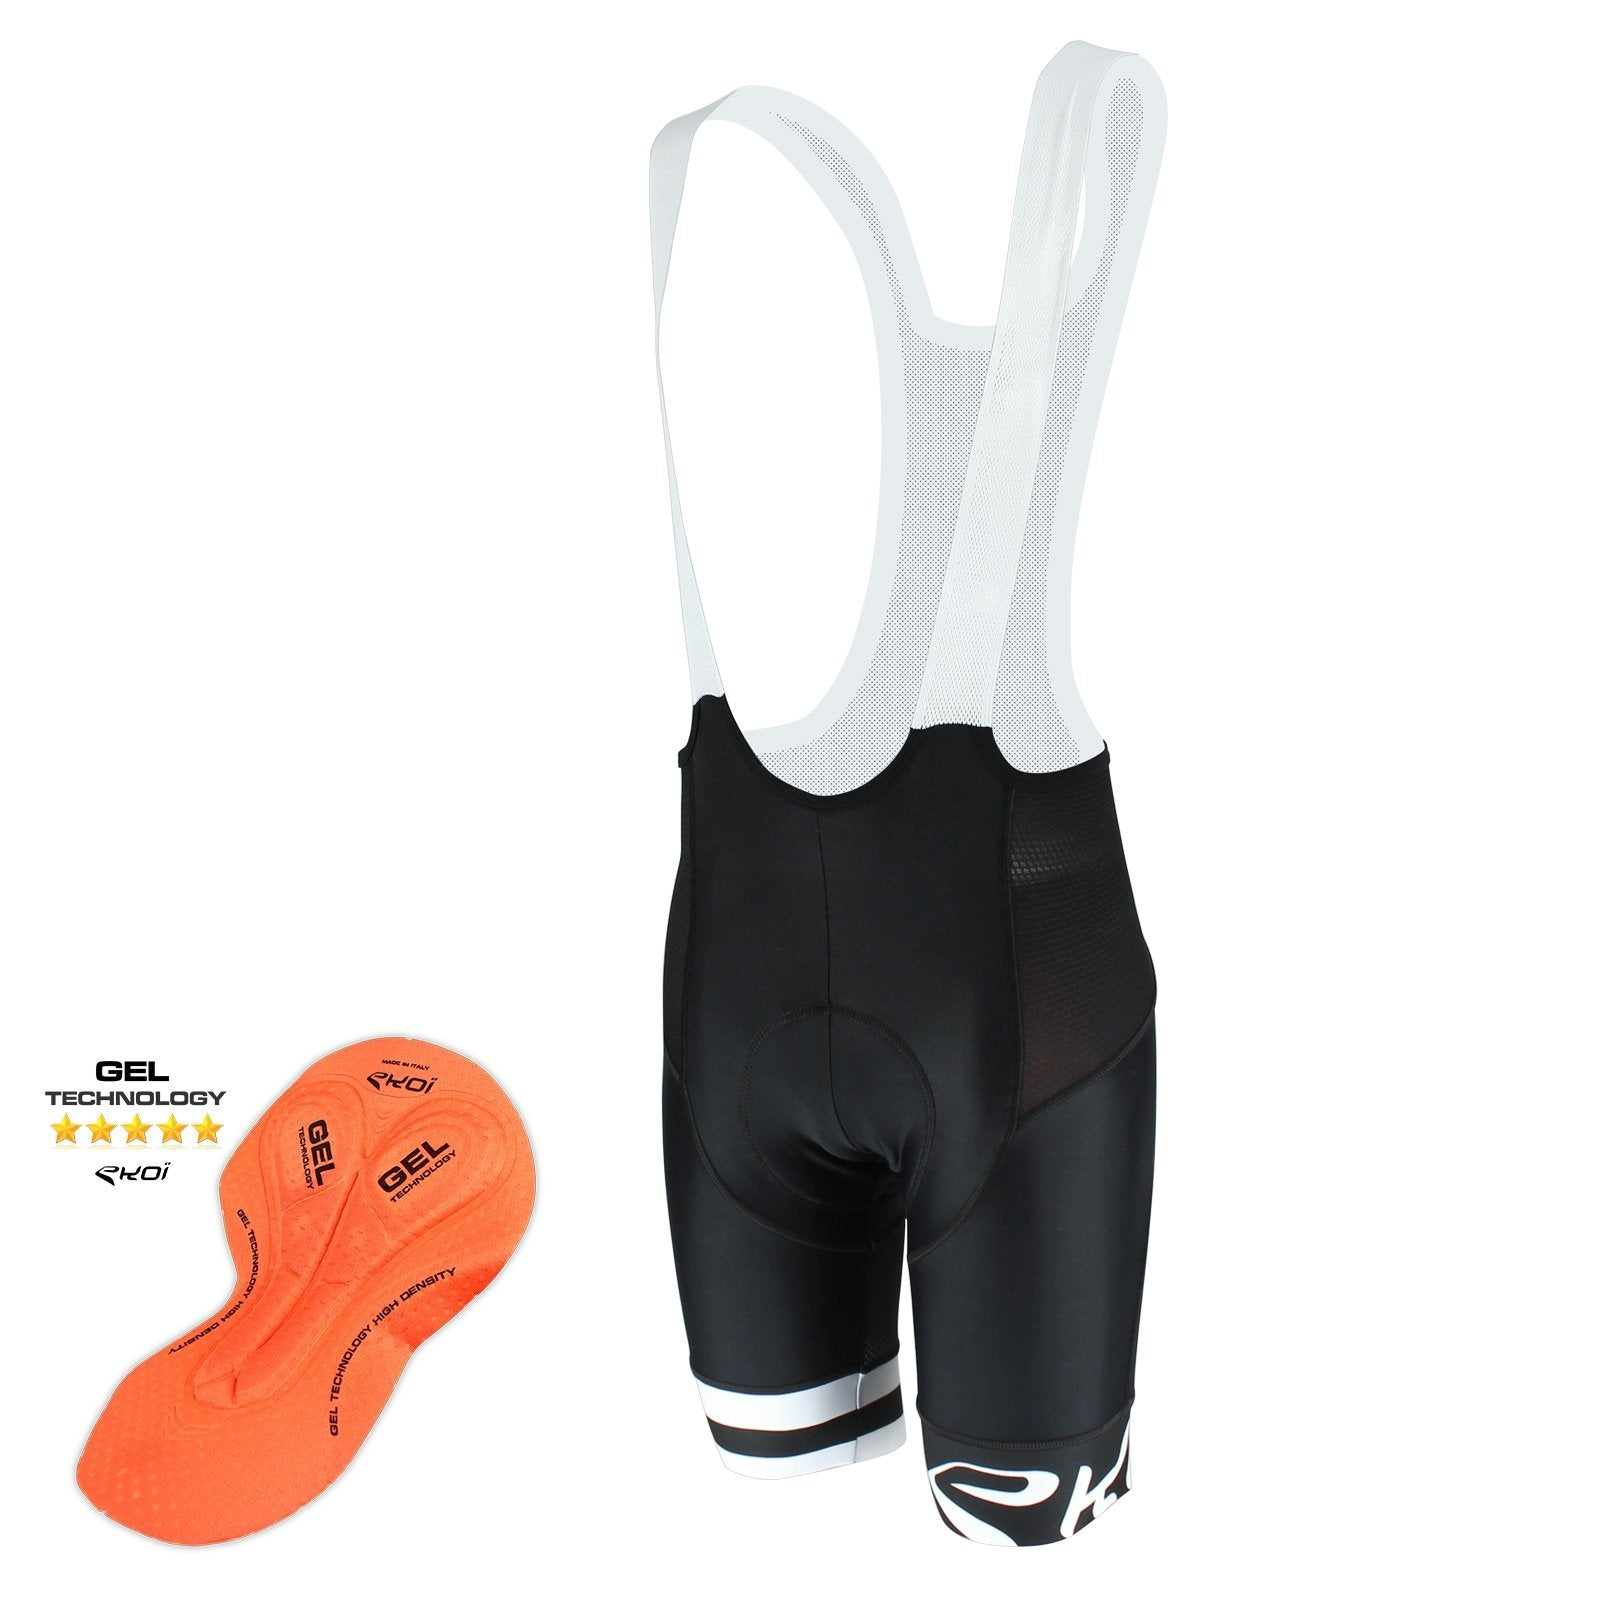 EKOI CORSA LIGHT GEL WHITE BIB SHORTS